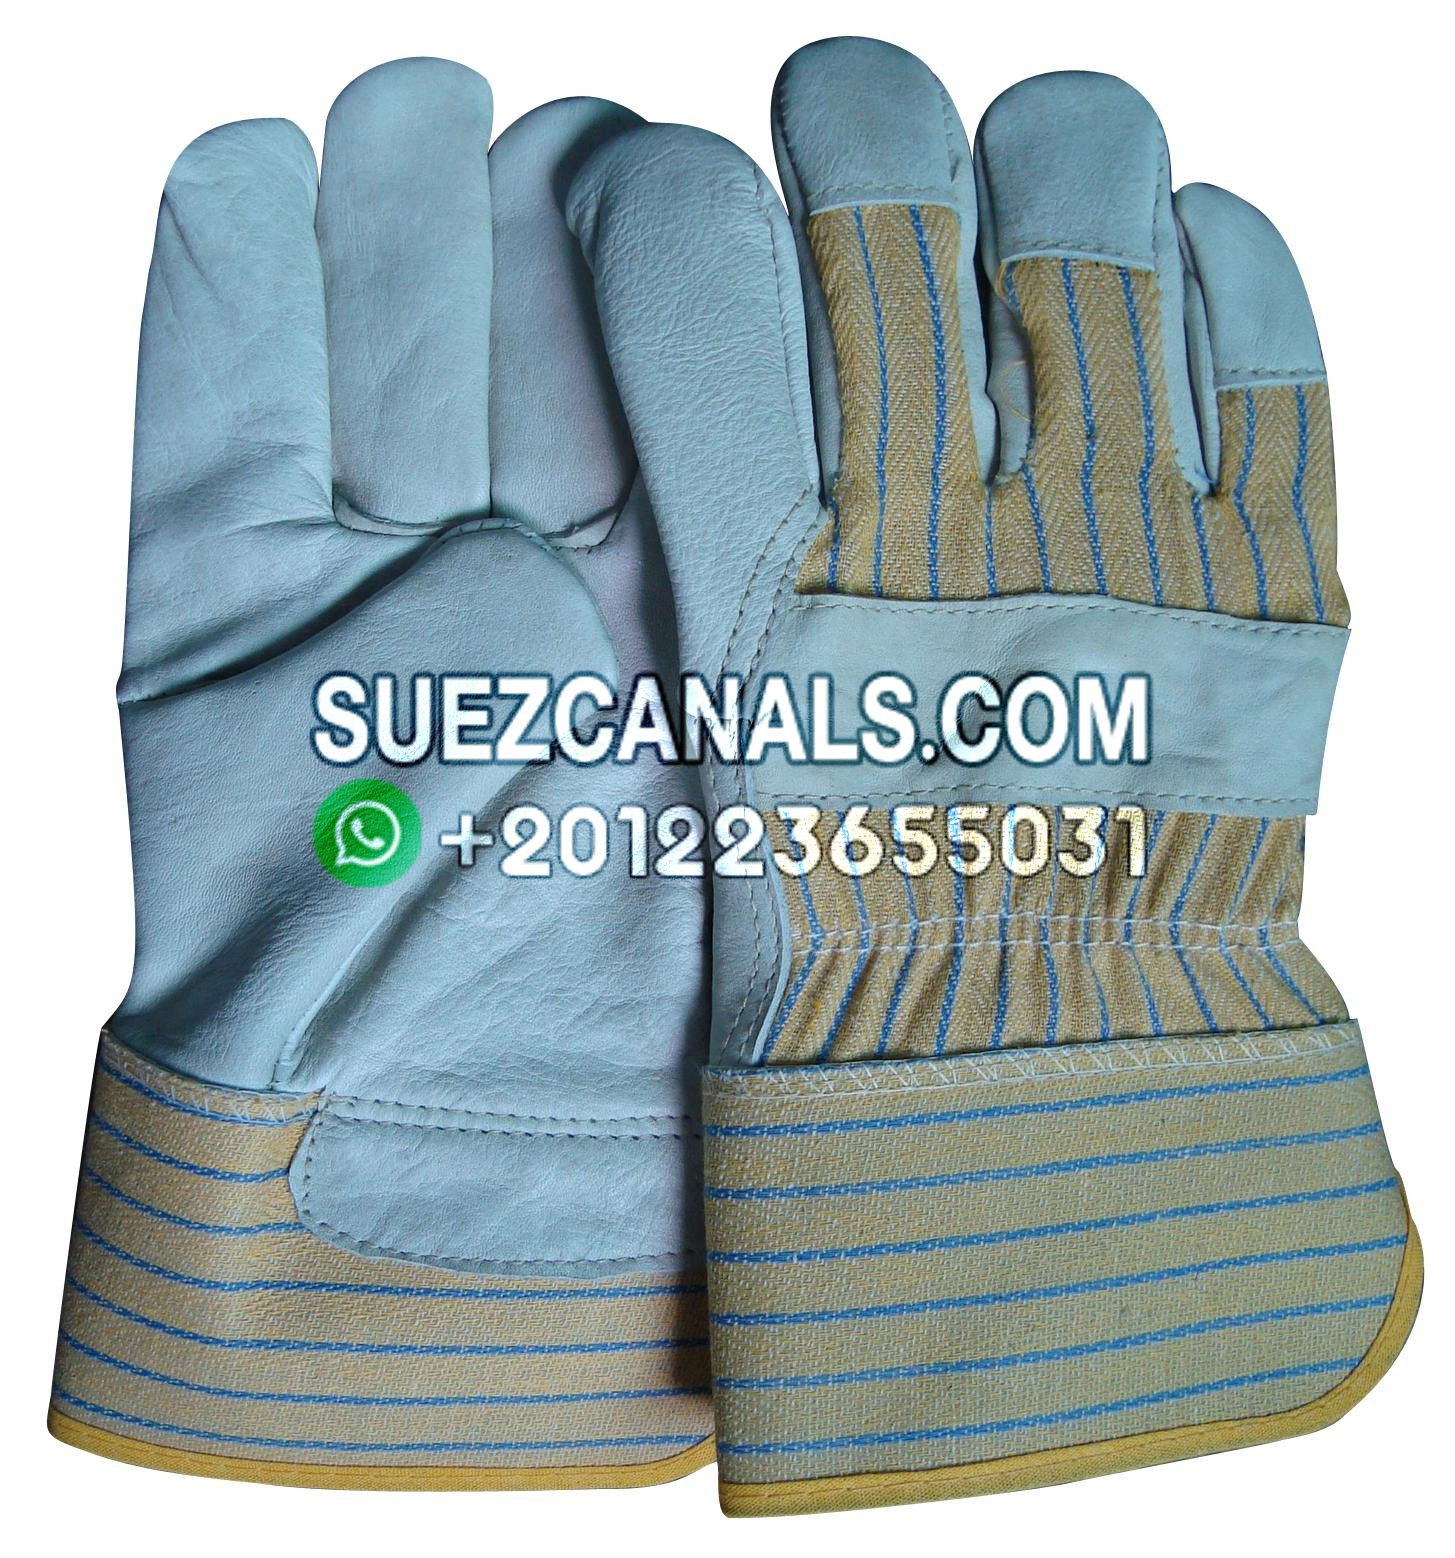 190107 Gloves Winter Vinyl Leather Size L Suez Canals